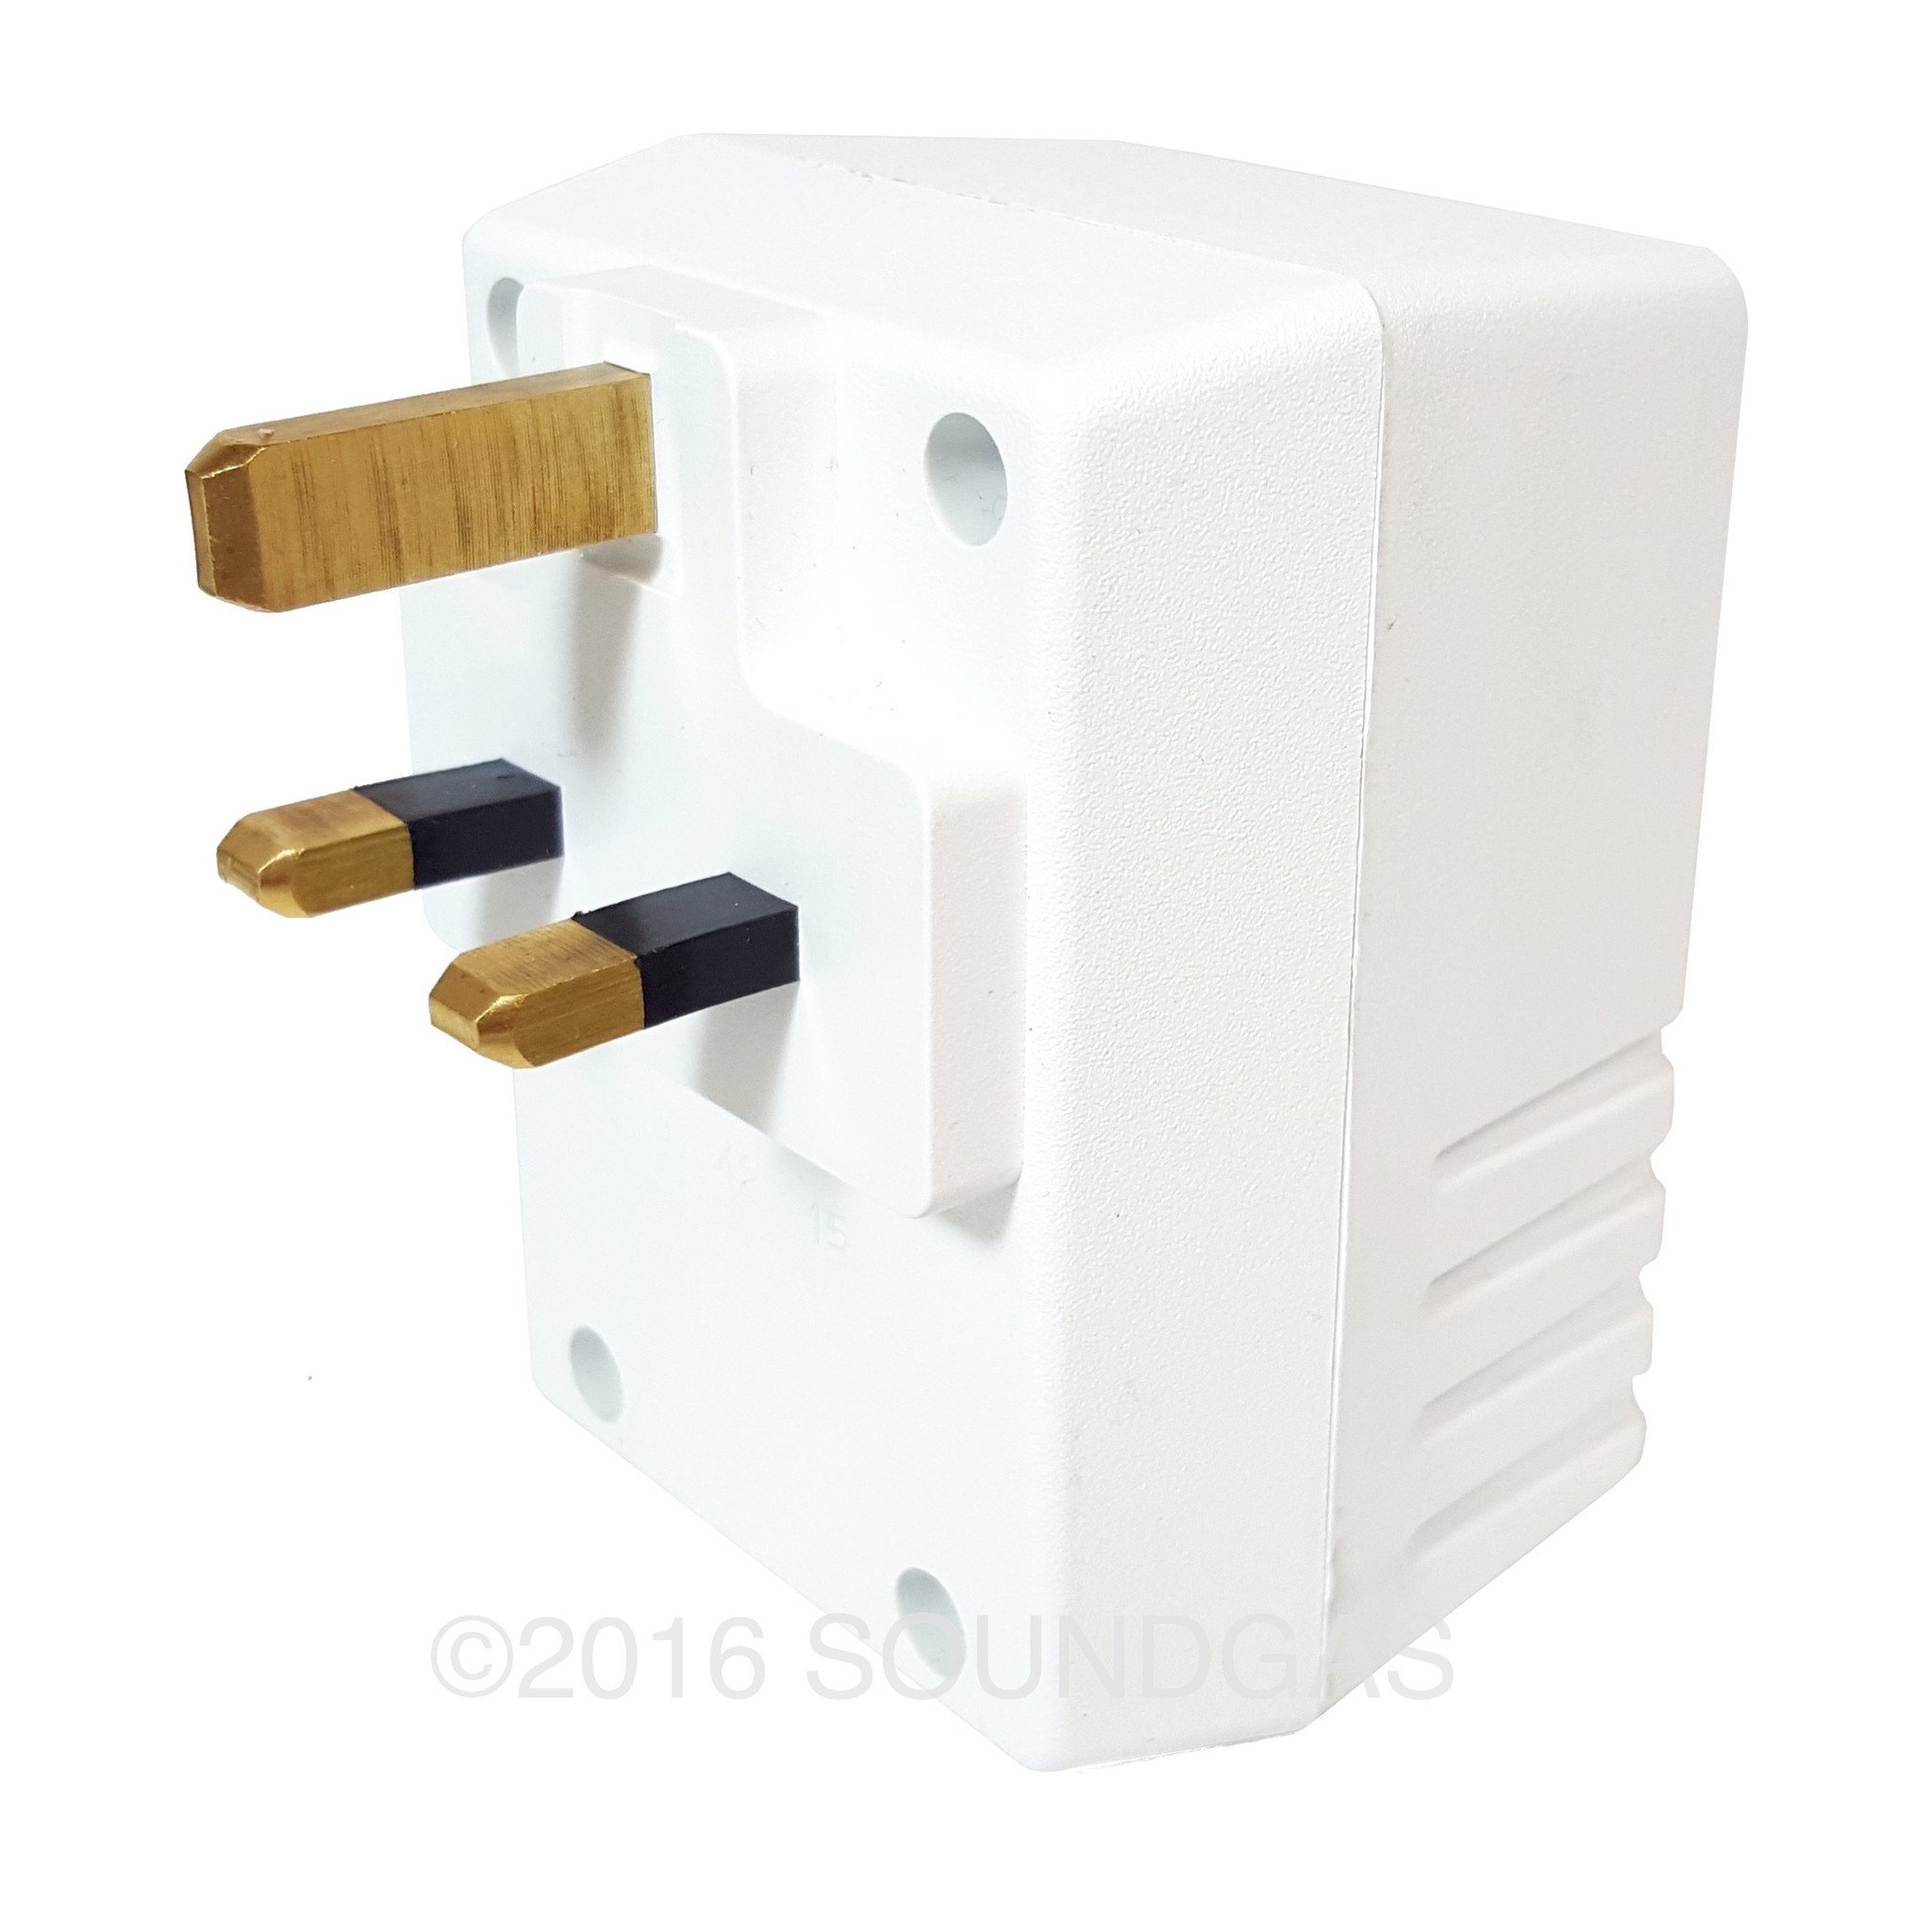 Step-Down Transformer 240v to 100v (for Japanese gear)